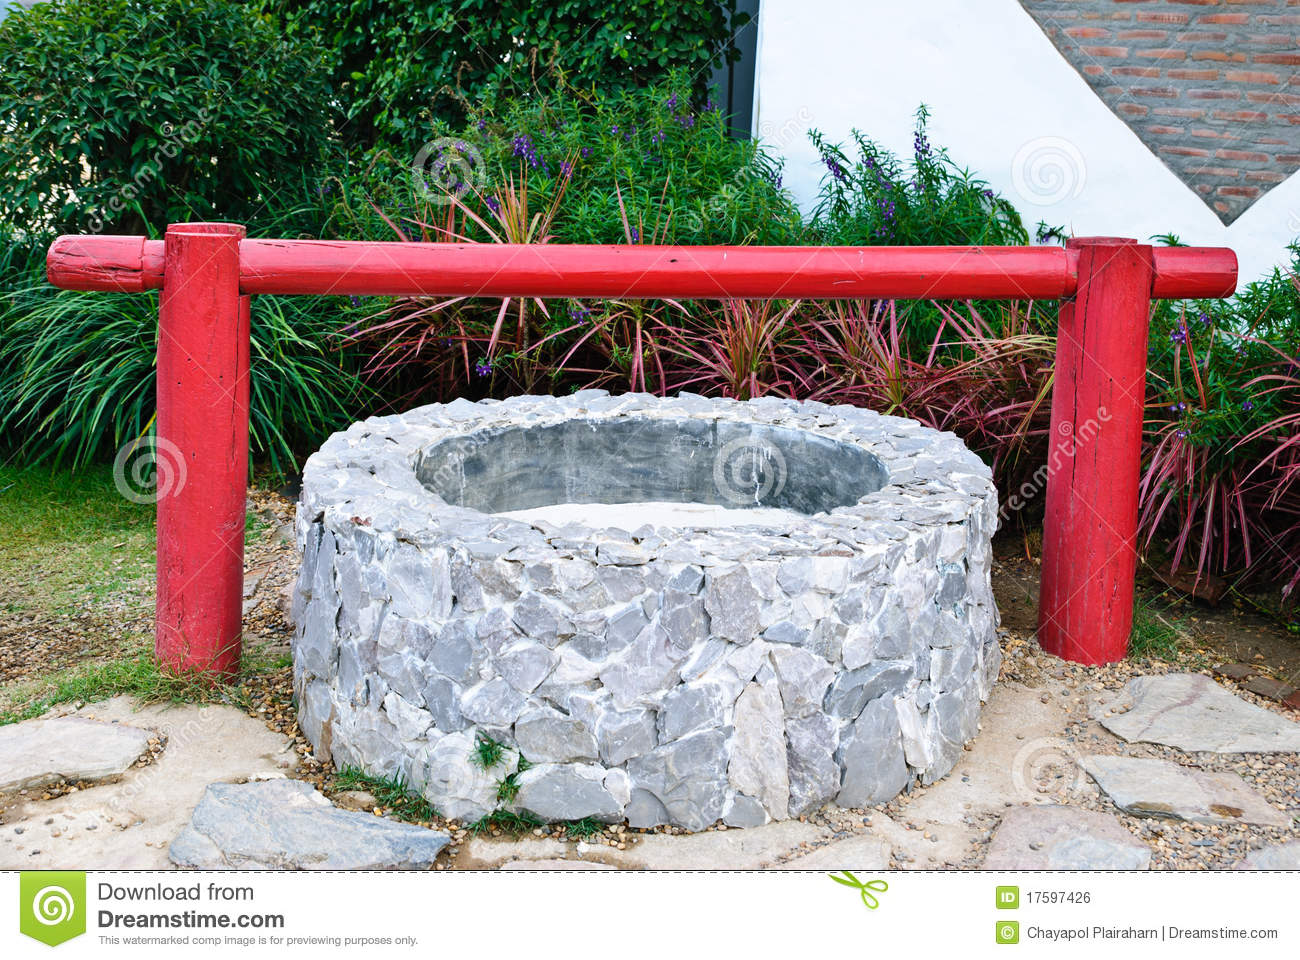 Photos of Old Water Wells http://www.dreamstime.com/royalty-free-stock-image-old-water-well-image17597426